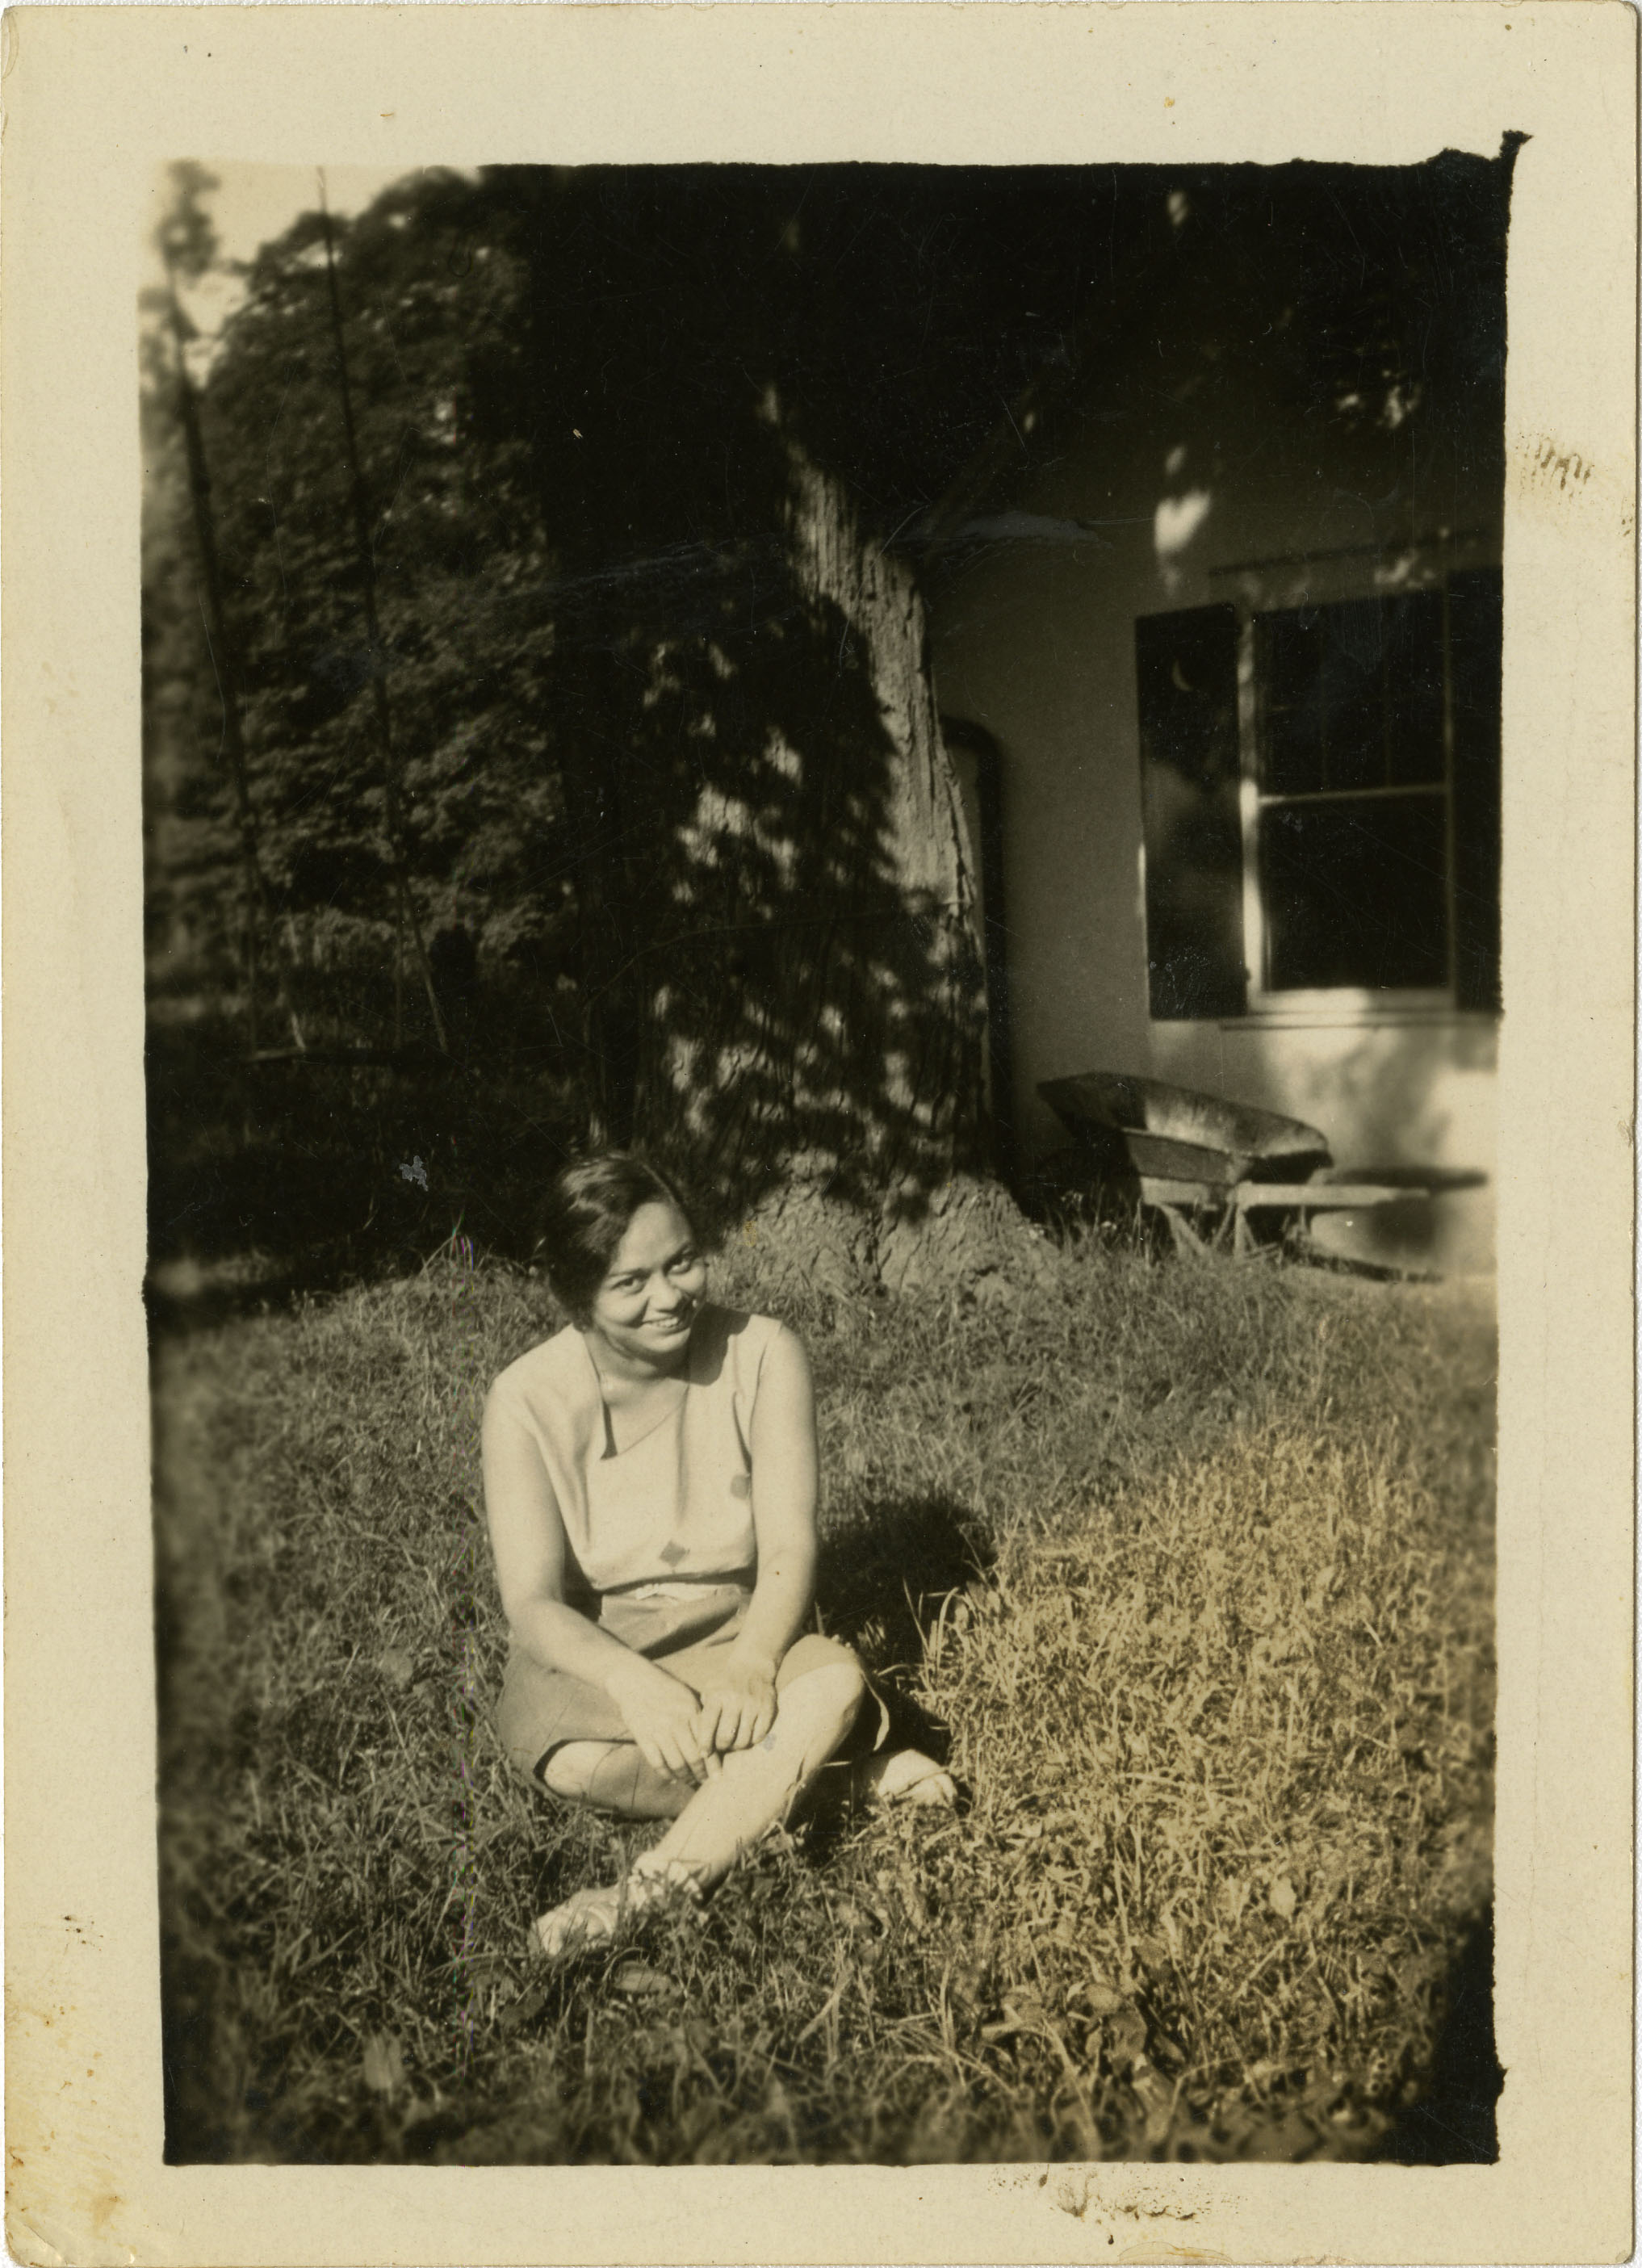 Woman sitting on grass in yard